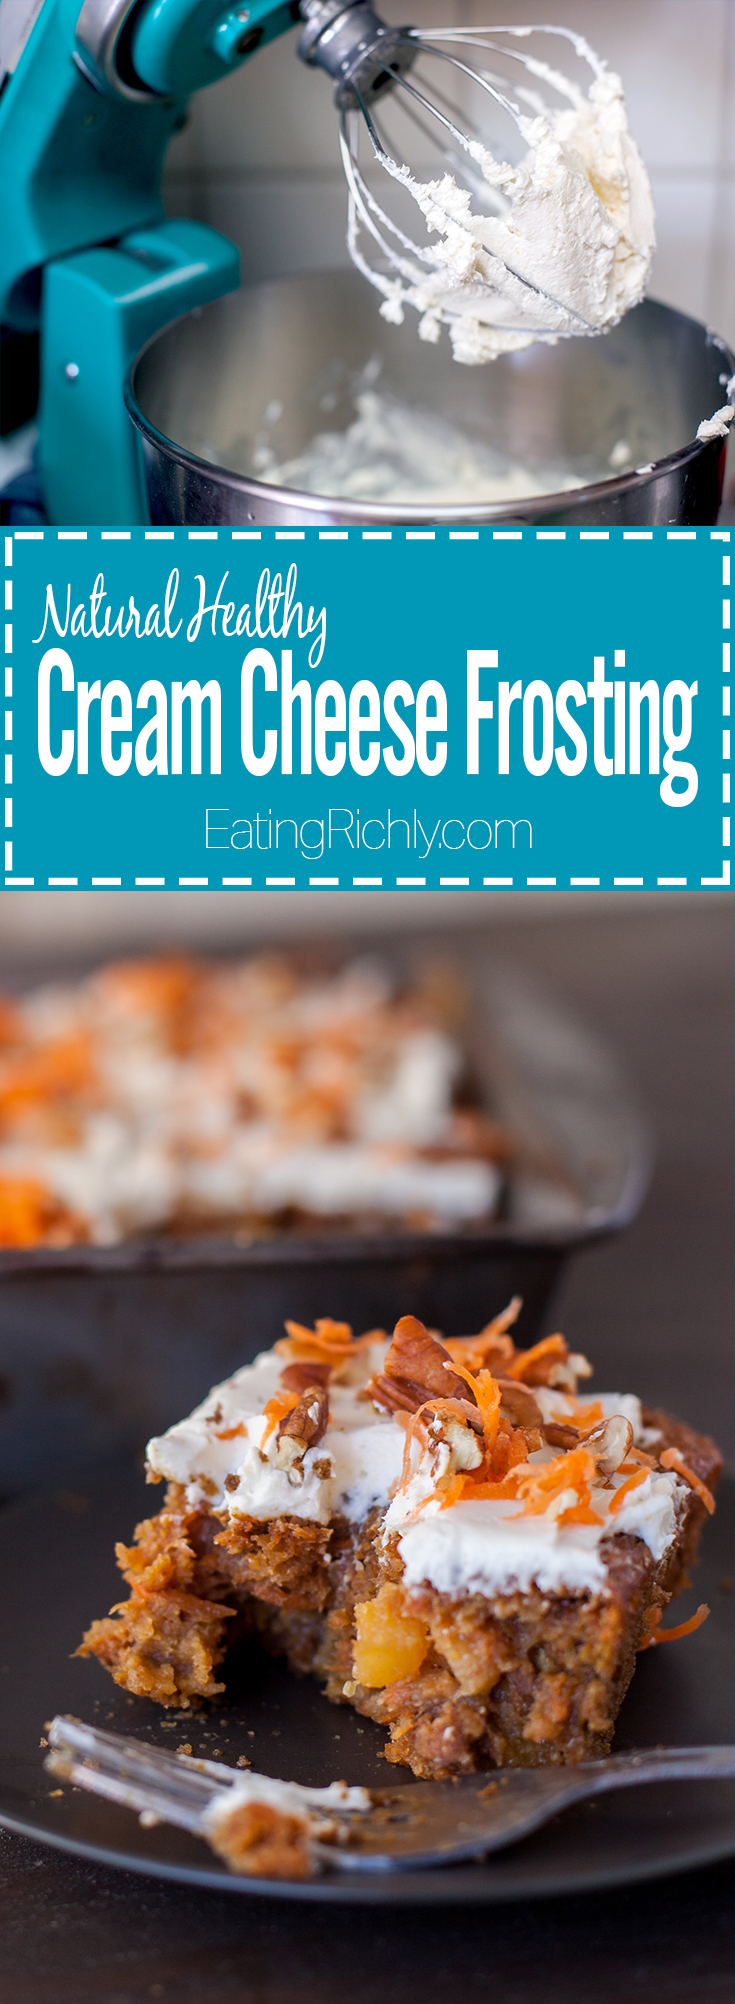 This healthy cream cheese frosting recipe has just a few ingredients and is actually good for you! From EatingRichly.com